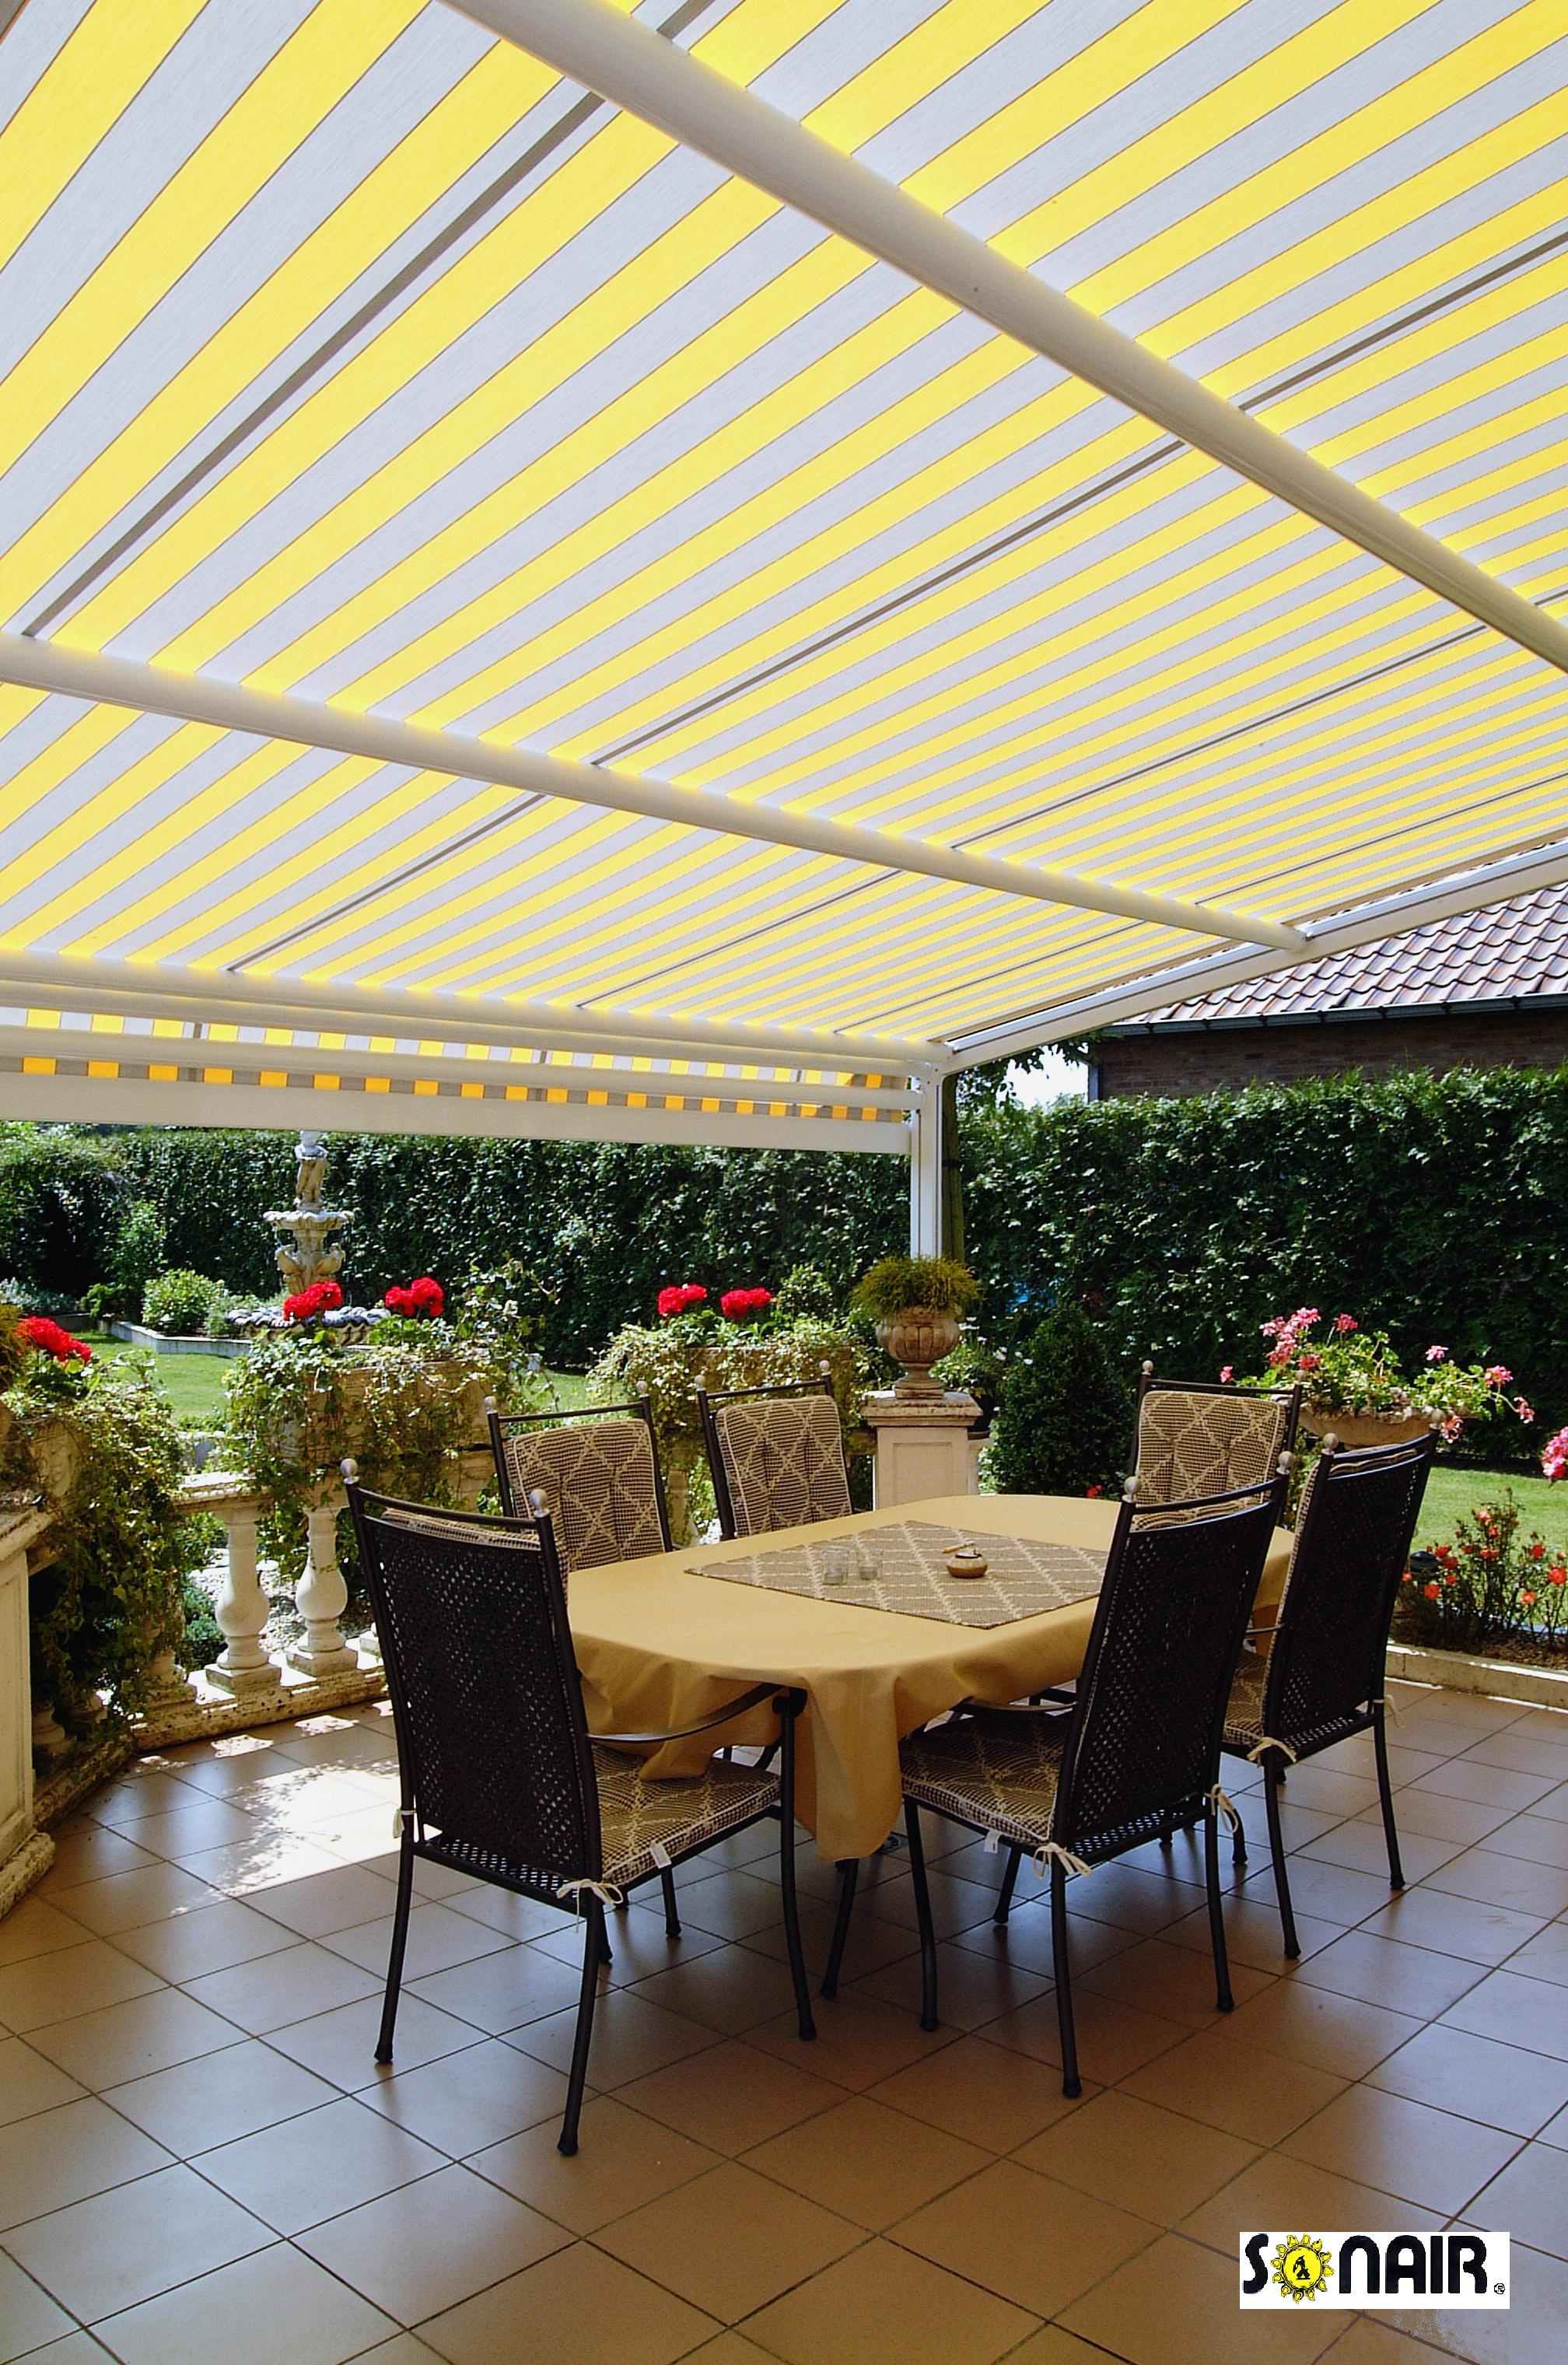 334 Our Pergolas come with almost any Fabric